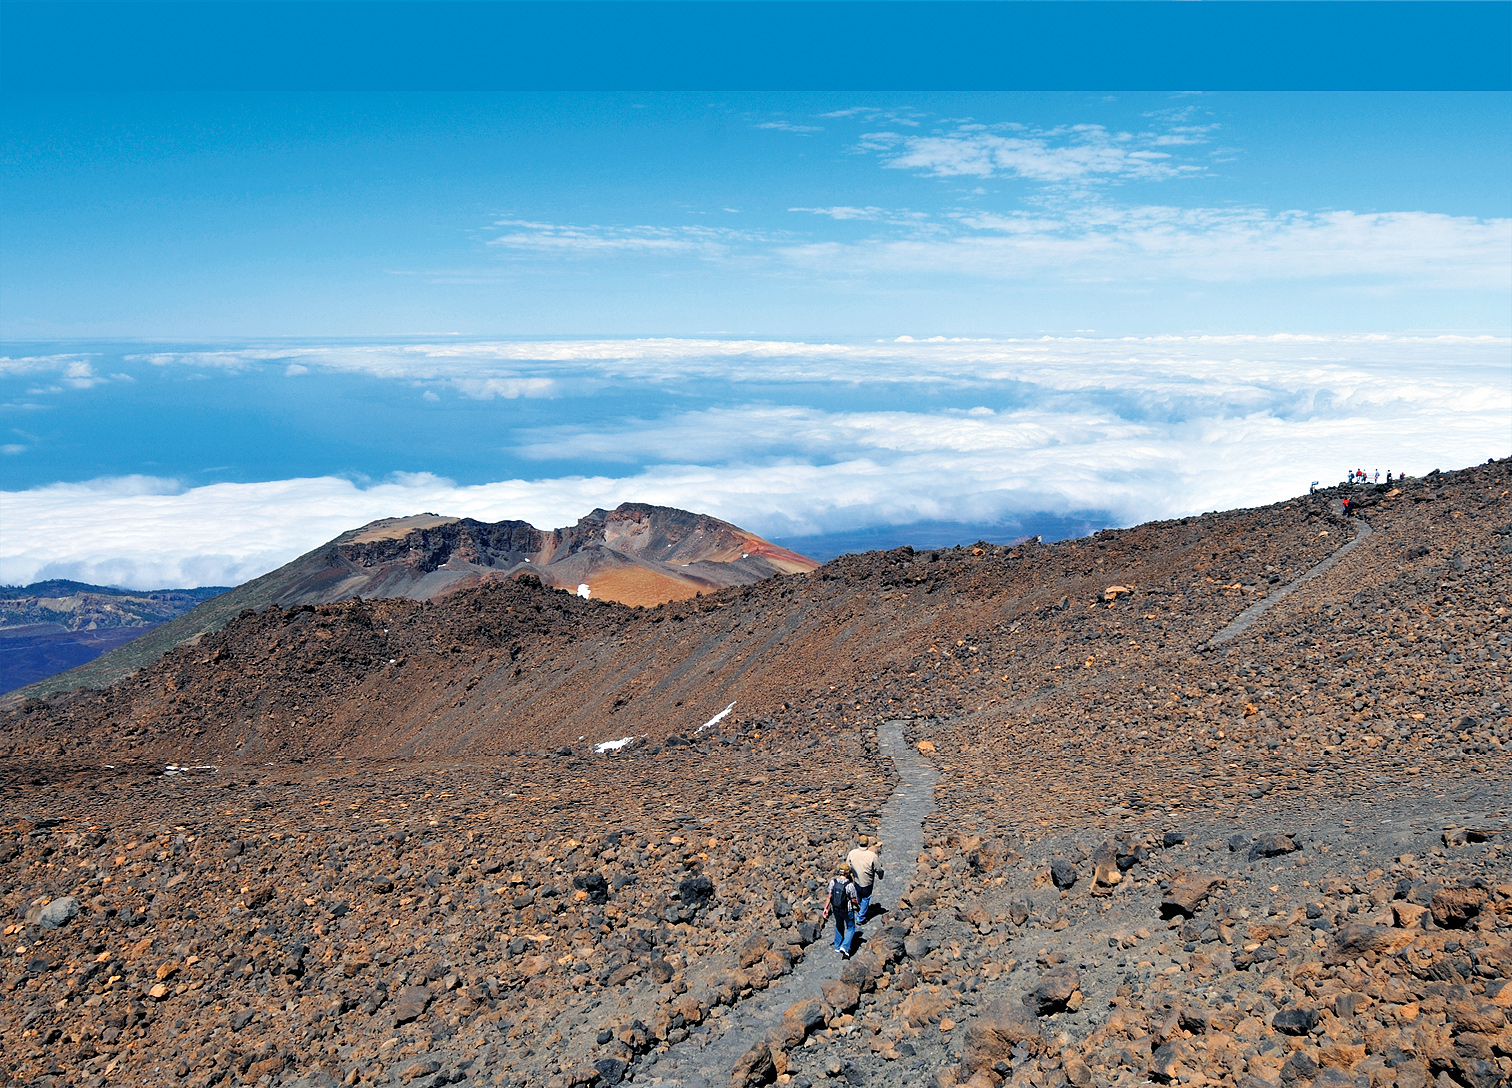 The Pico Viejo trail: Teide without permit